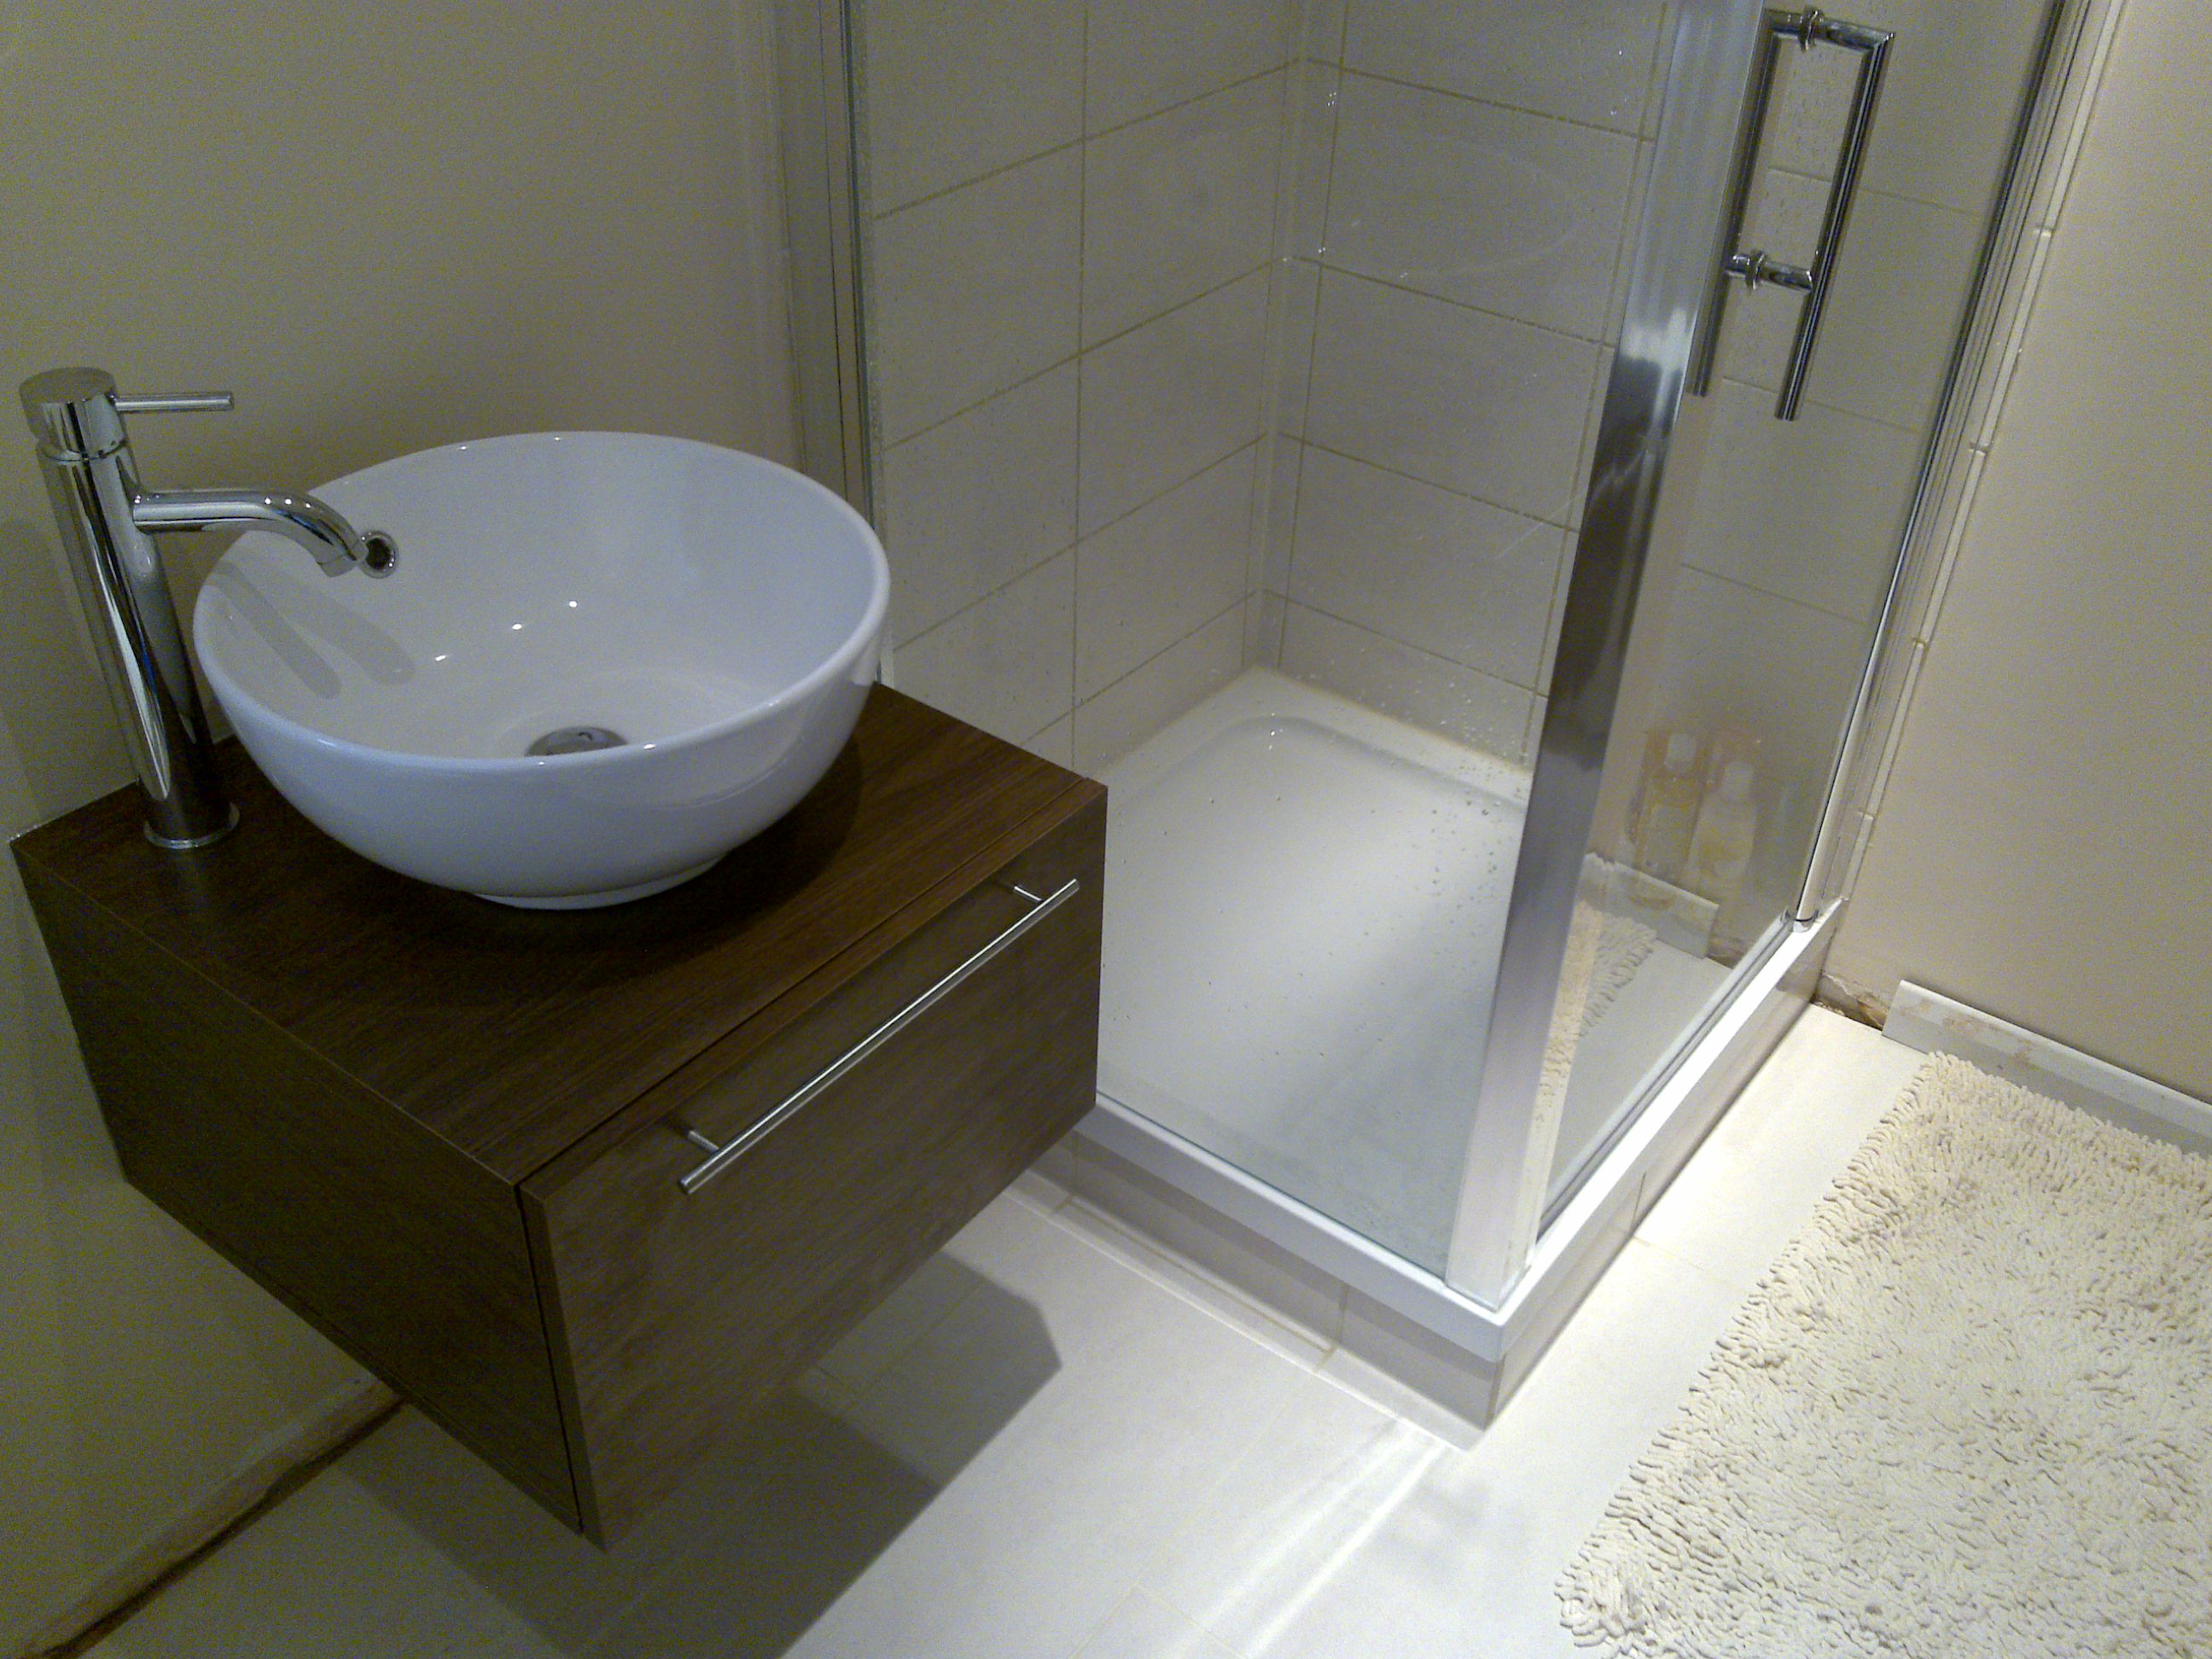 Counter Top Basin & Shower Cubicle.